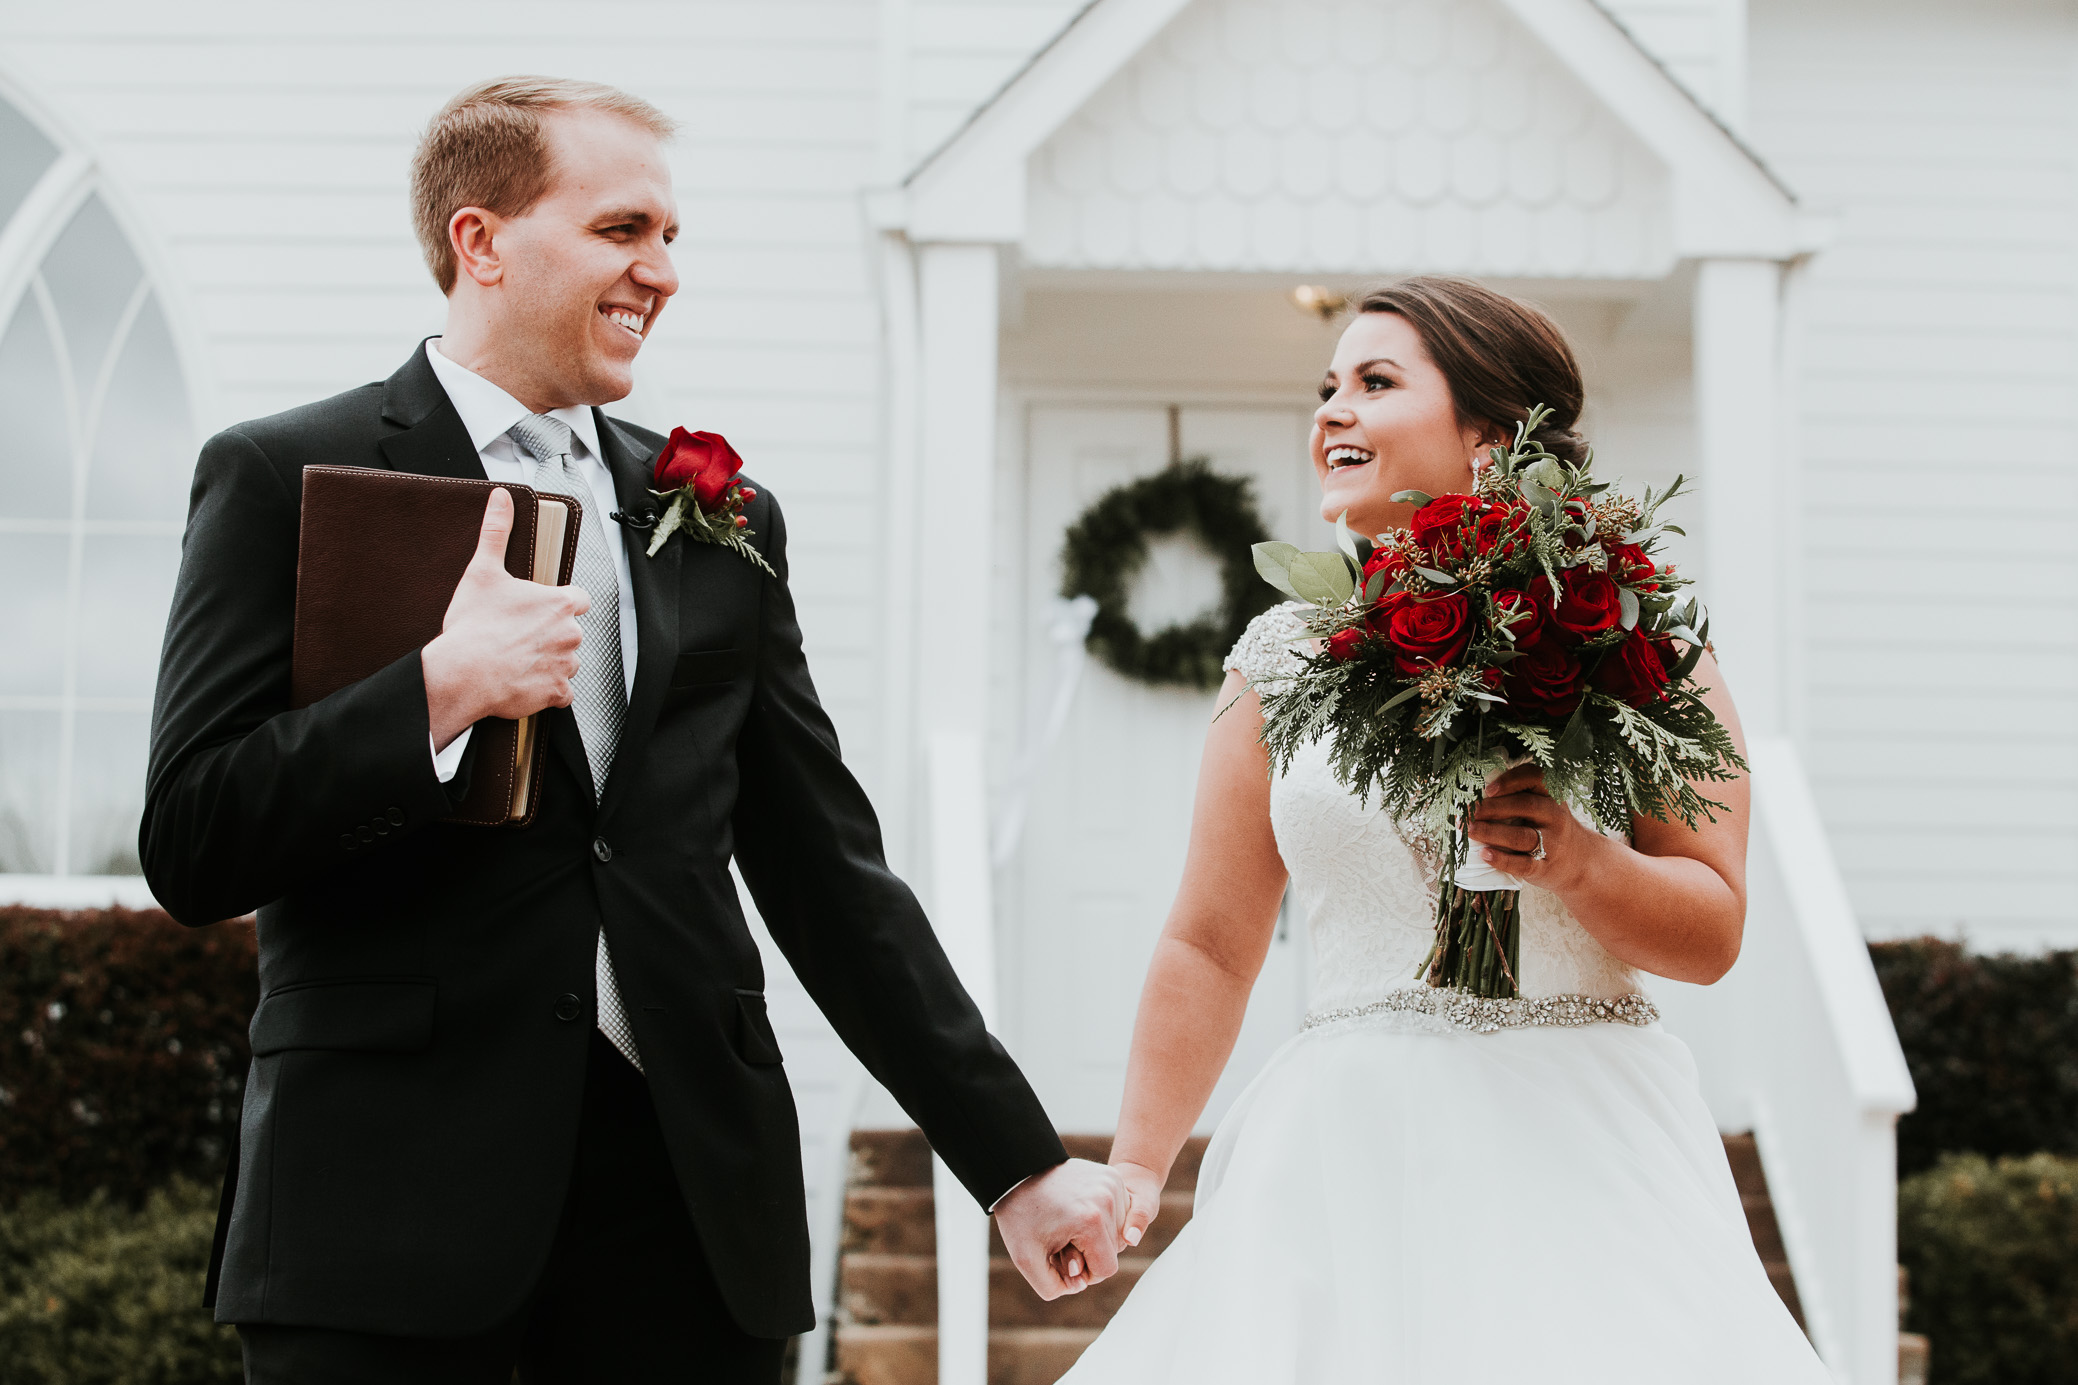 Winter wedding photography for Elise and Neil at Christ Church in Odenville, Alabama on January 13th, 2018 by David A. Smith of DSmithImages Wedding Photography, Portraits, and Events in the Birmingham, Alabama area